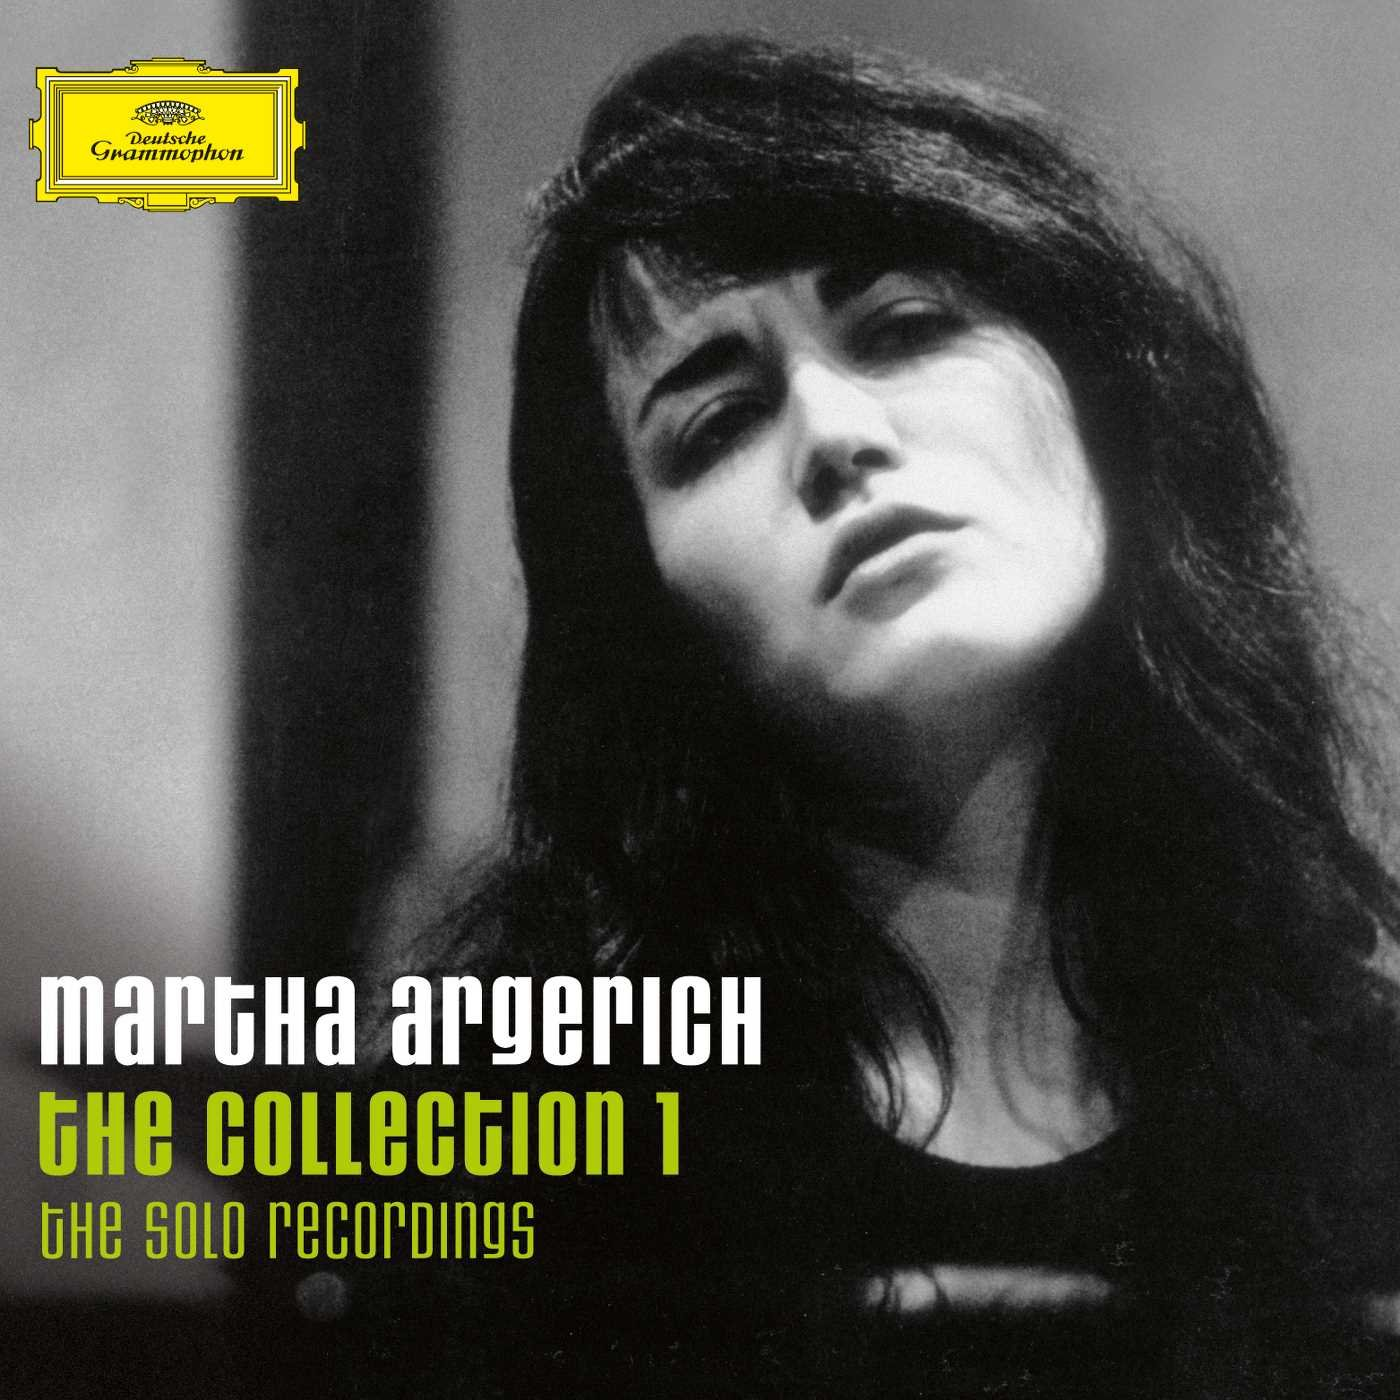 Martha Argerich: The Collection 1 - The Solo Recordings by ARGERICH,MARTHA